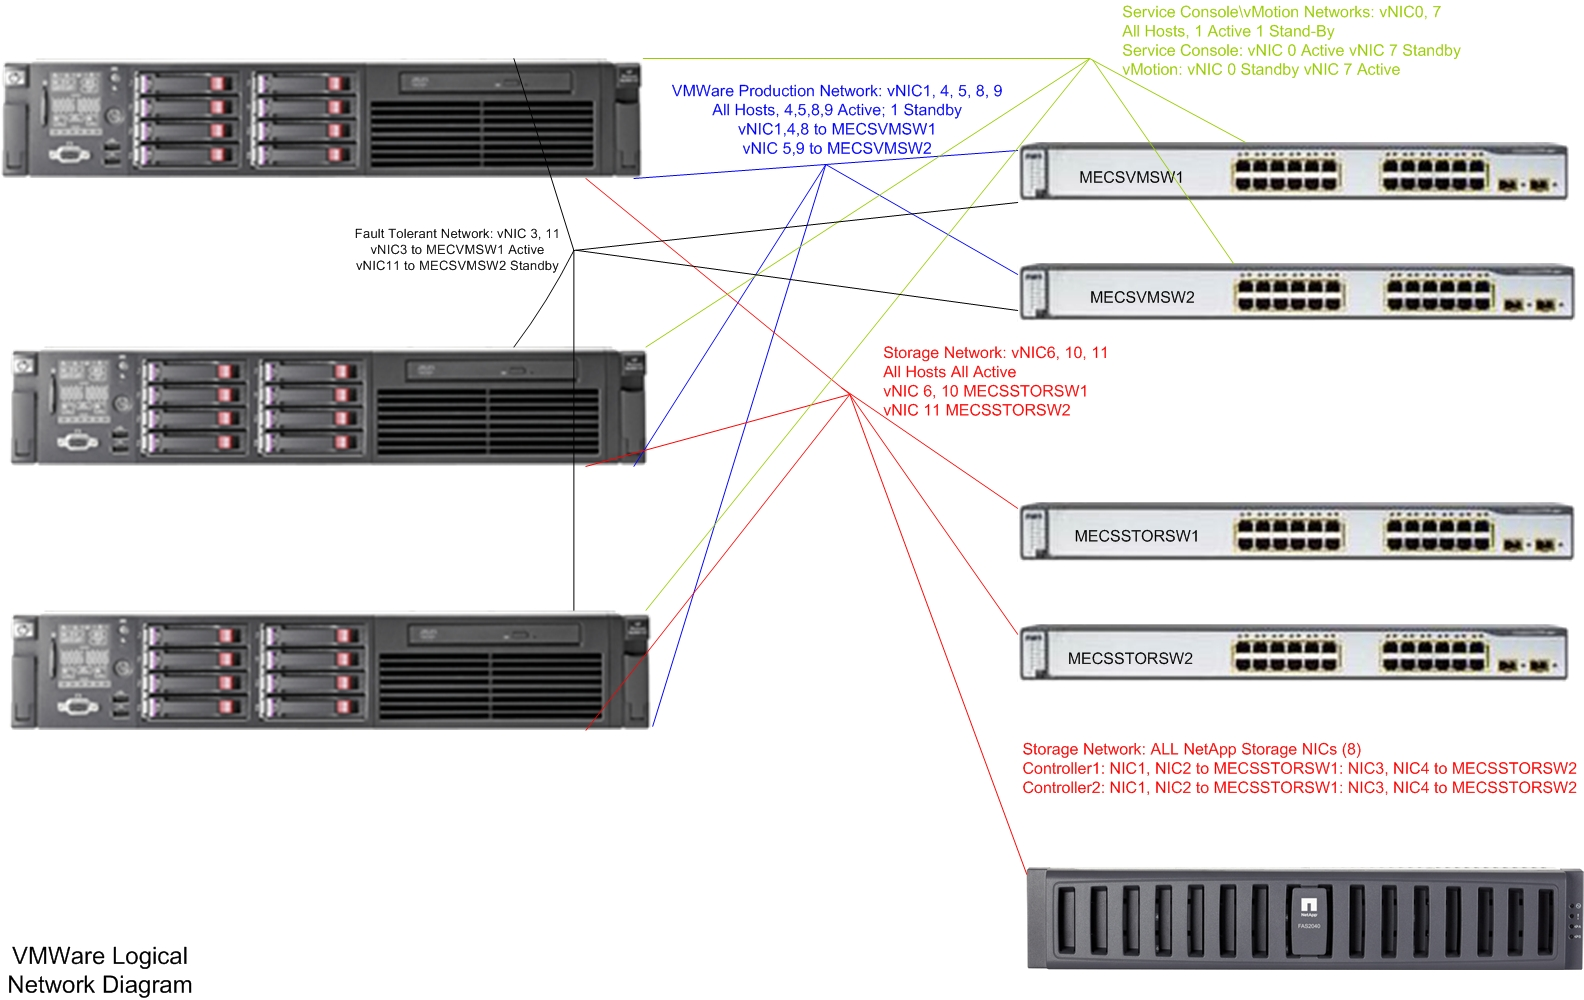 hight resolution of vmware networks overview jpg 538 kb